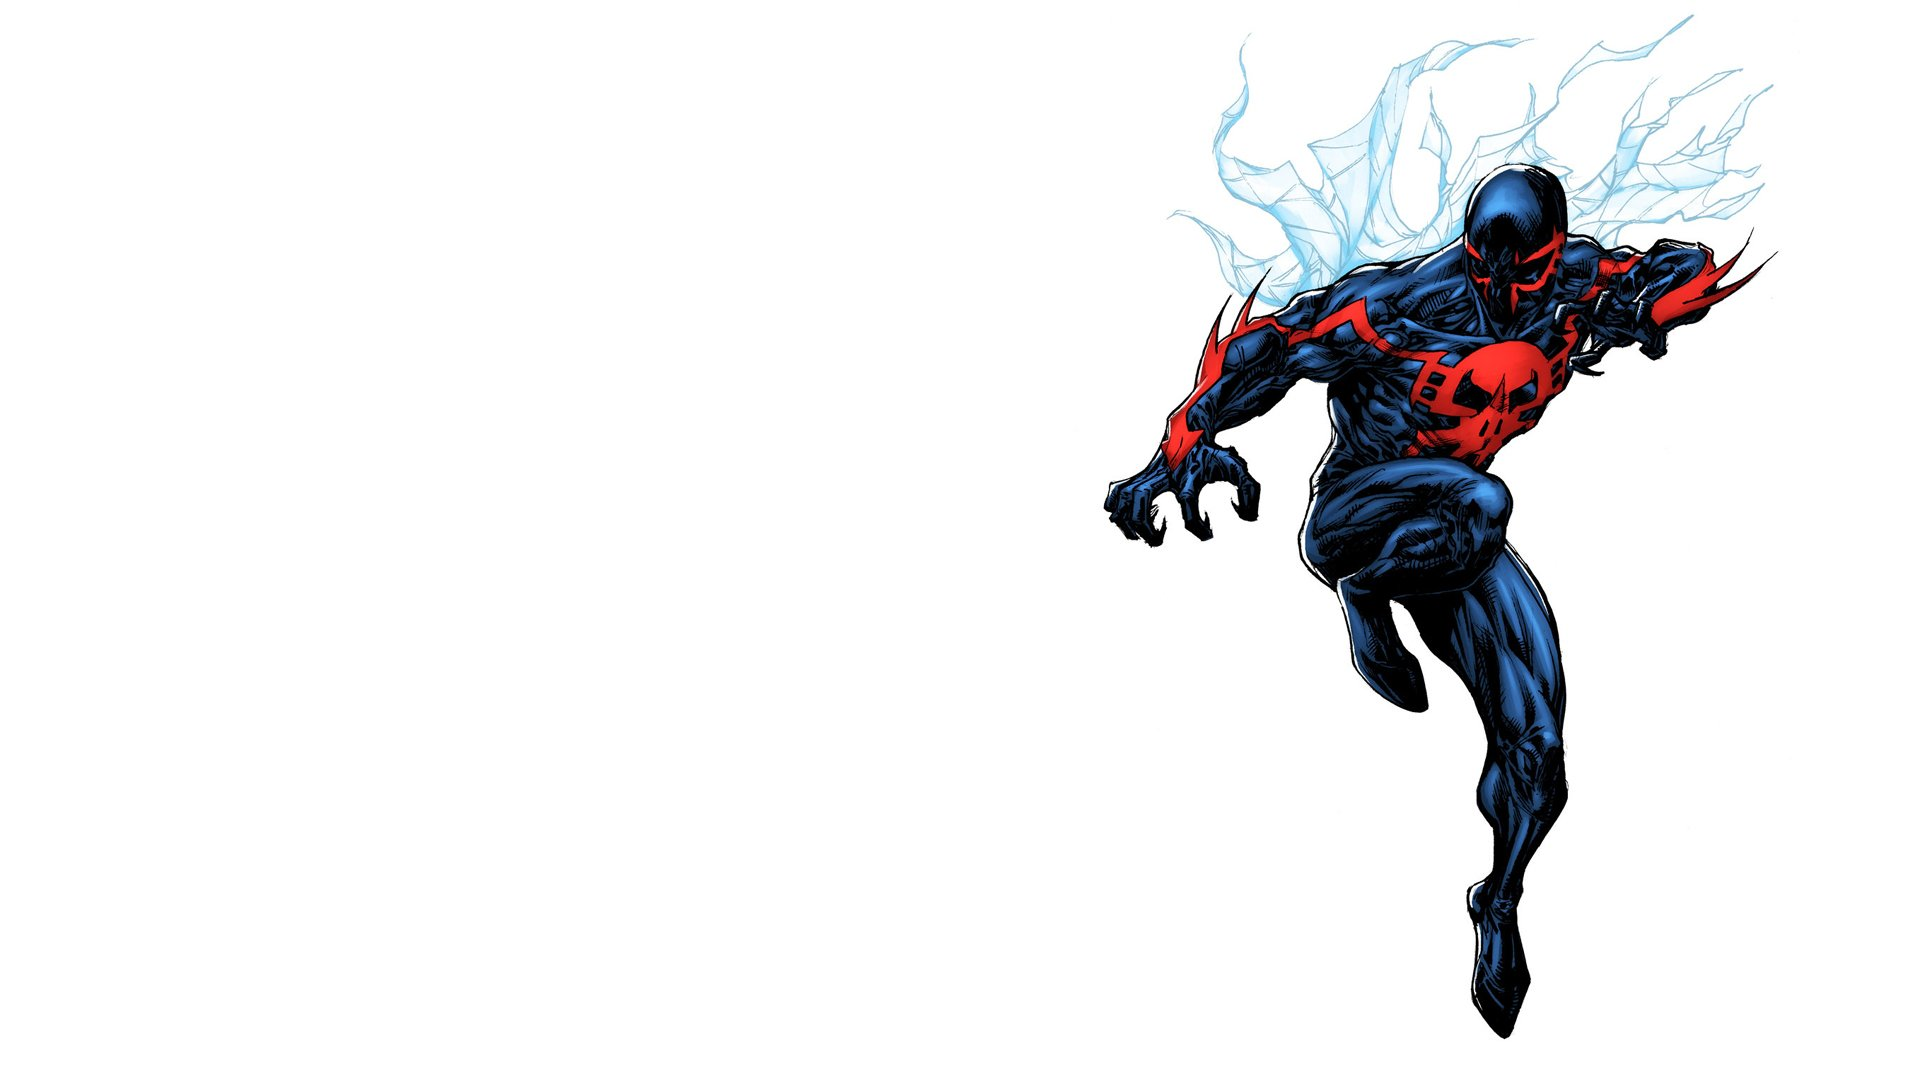 Spider Man 2099 Hd Wallpaper Background Image 1920x1080 Id